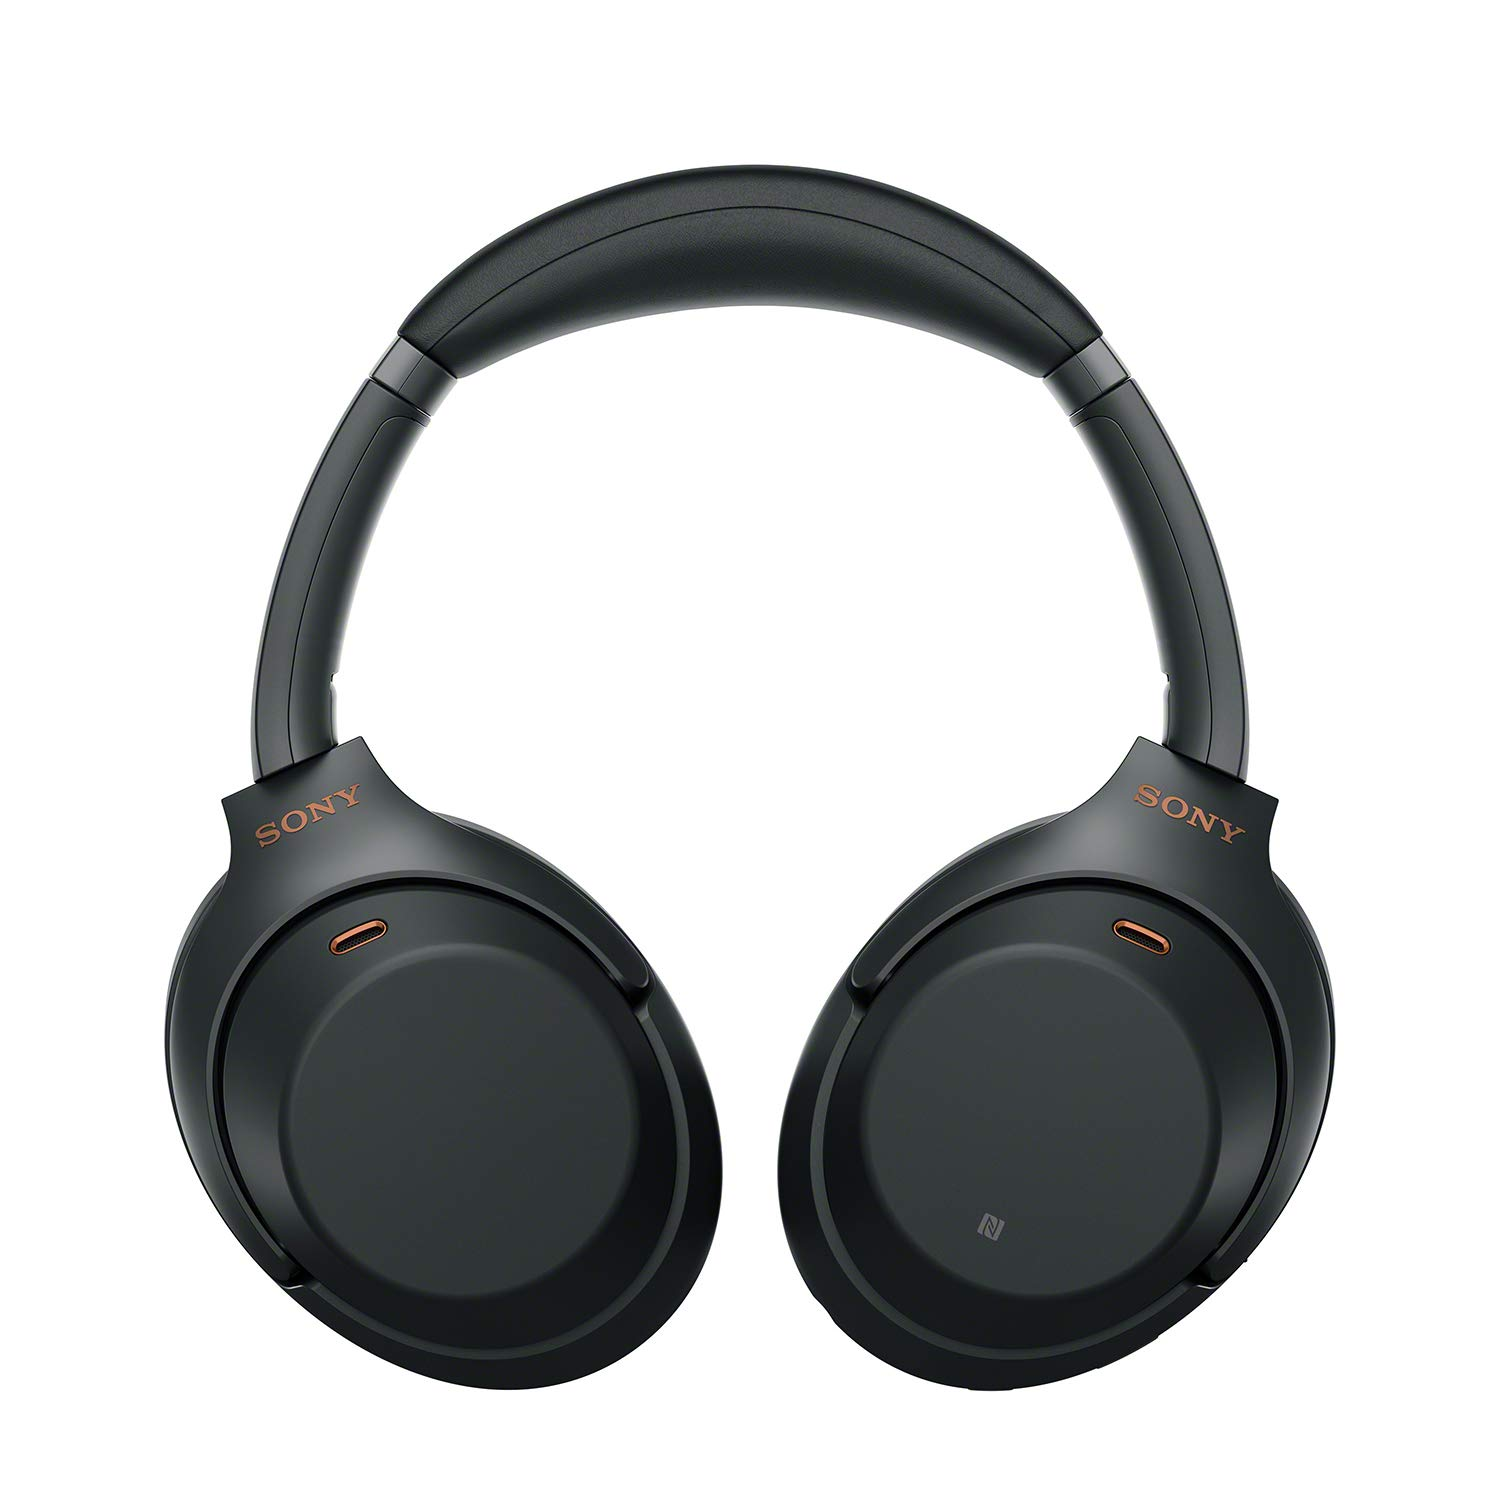 Sony-Noise-Cancelling-Headphone-WH-1000XM3